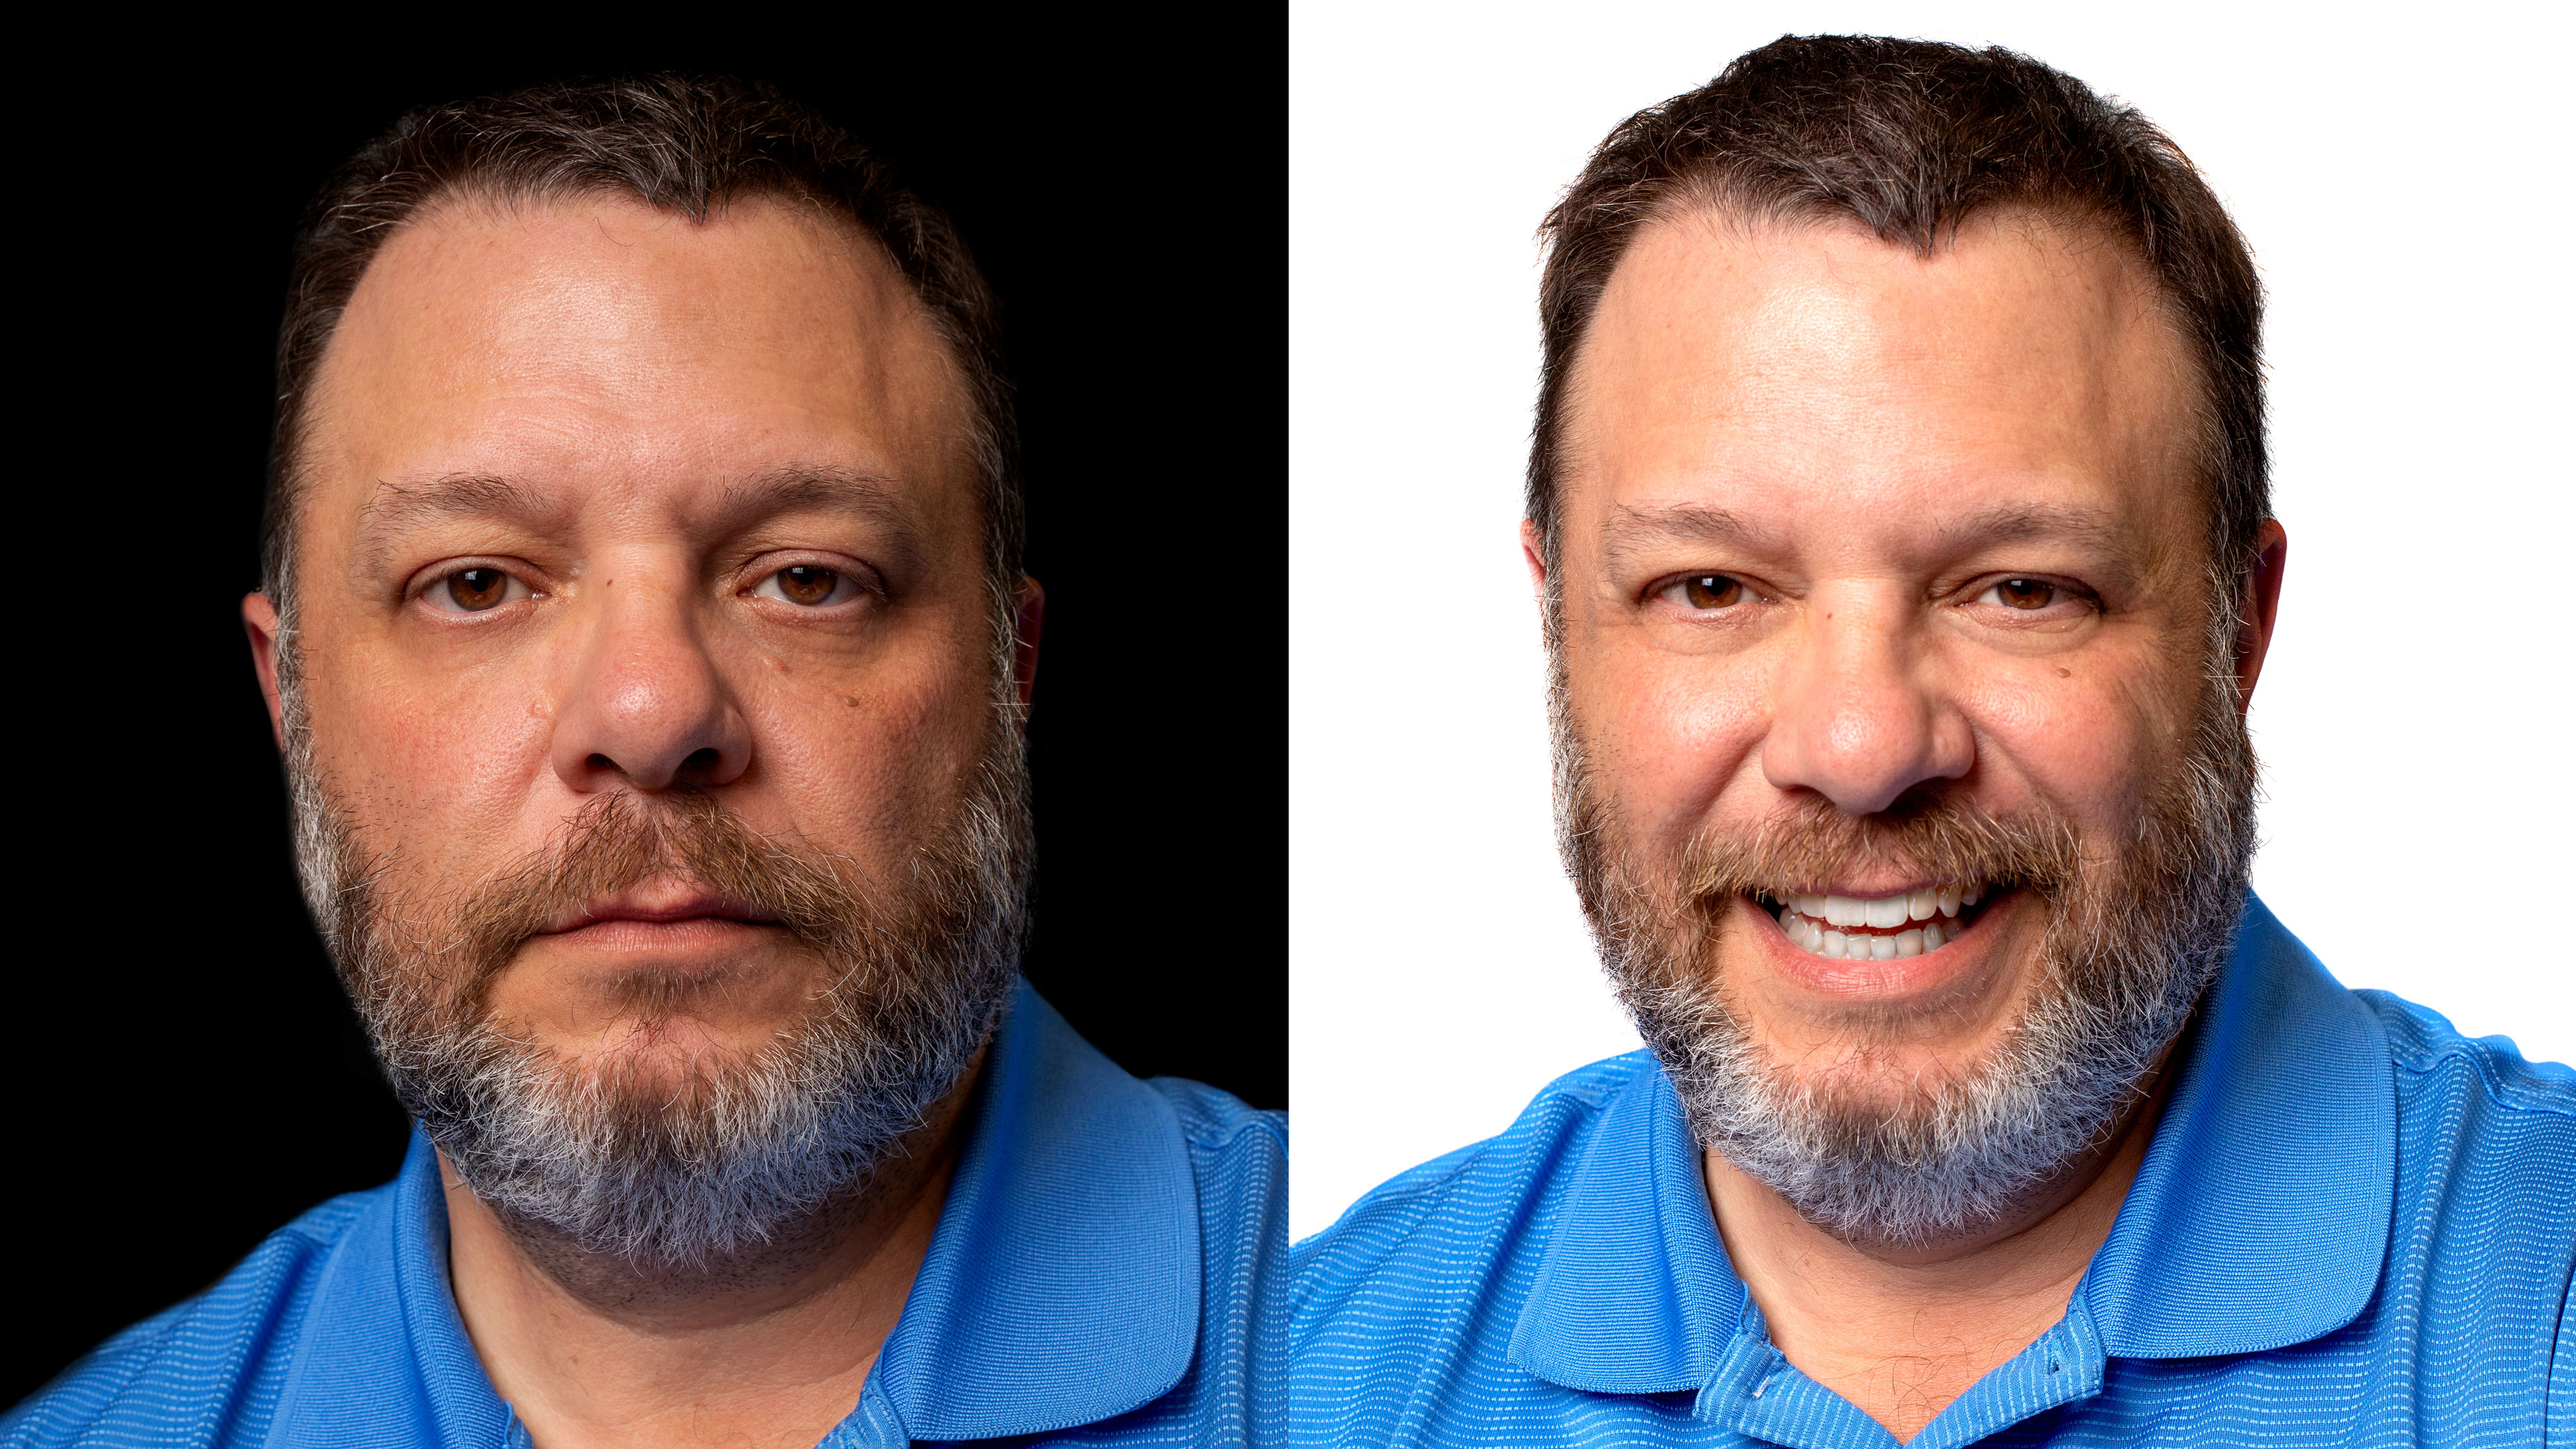 Two headshots of Frank Monteiro of Waterbury, left headshot with serious expression and right headshot smiling